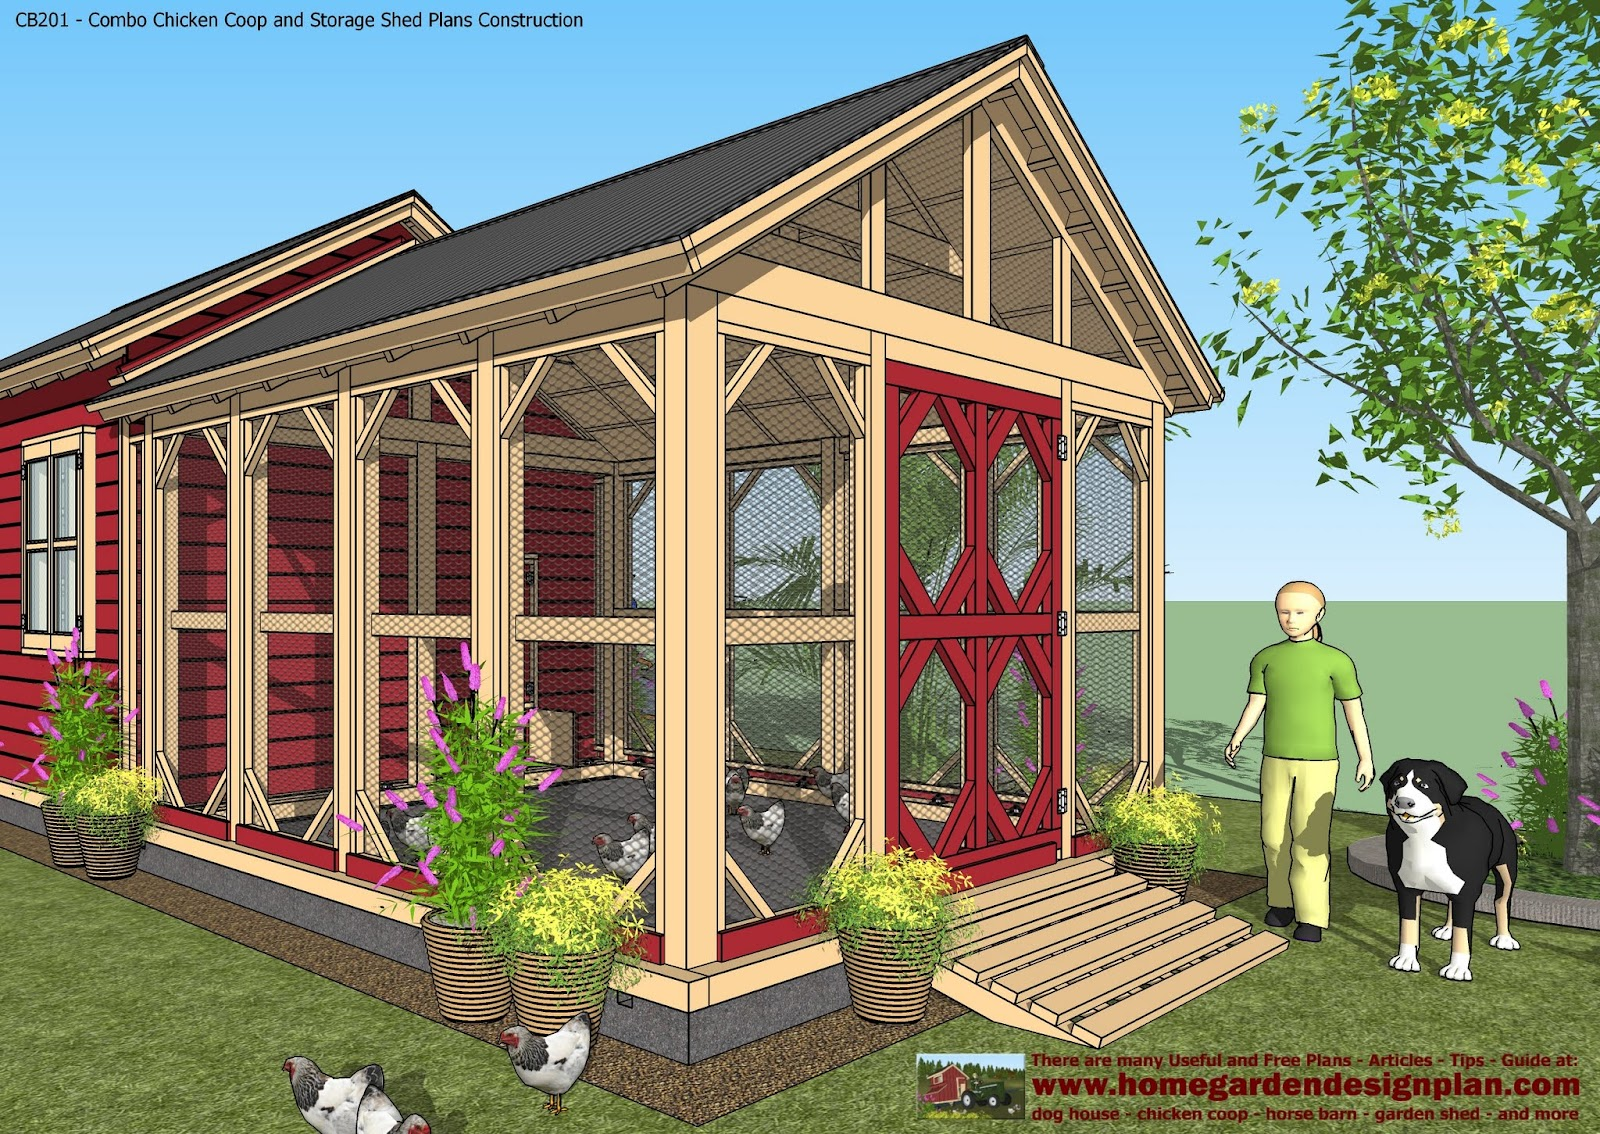 Shed plans colonial style cb201 combo plans chicken coop for Garden shed designs 5